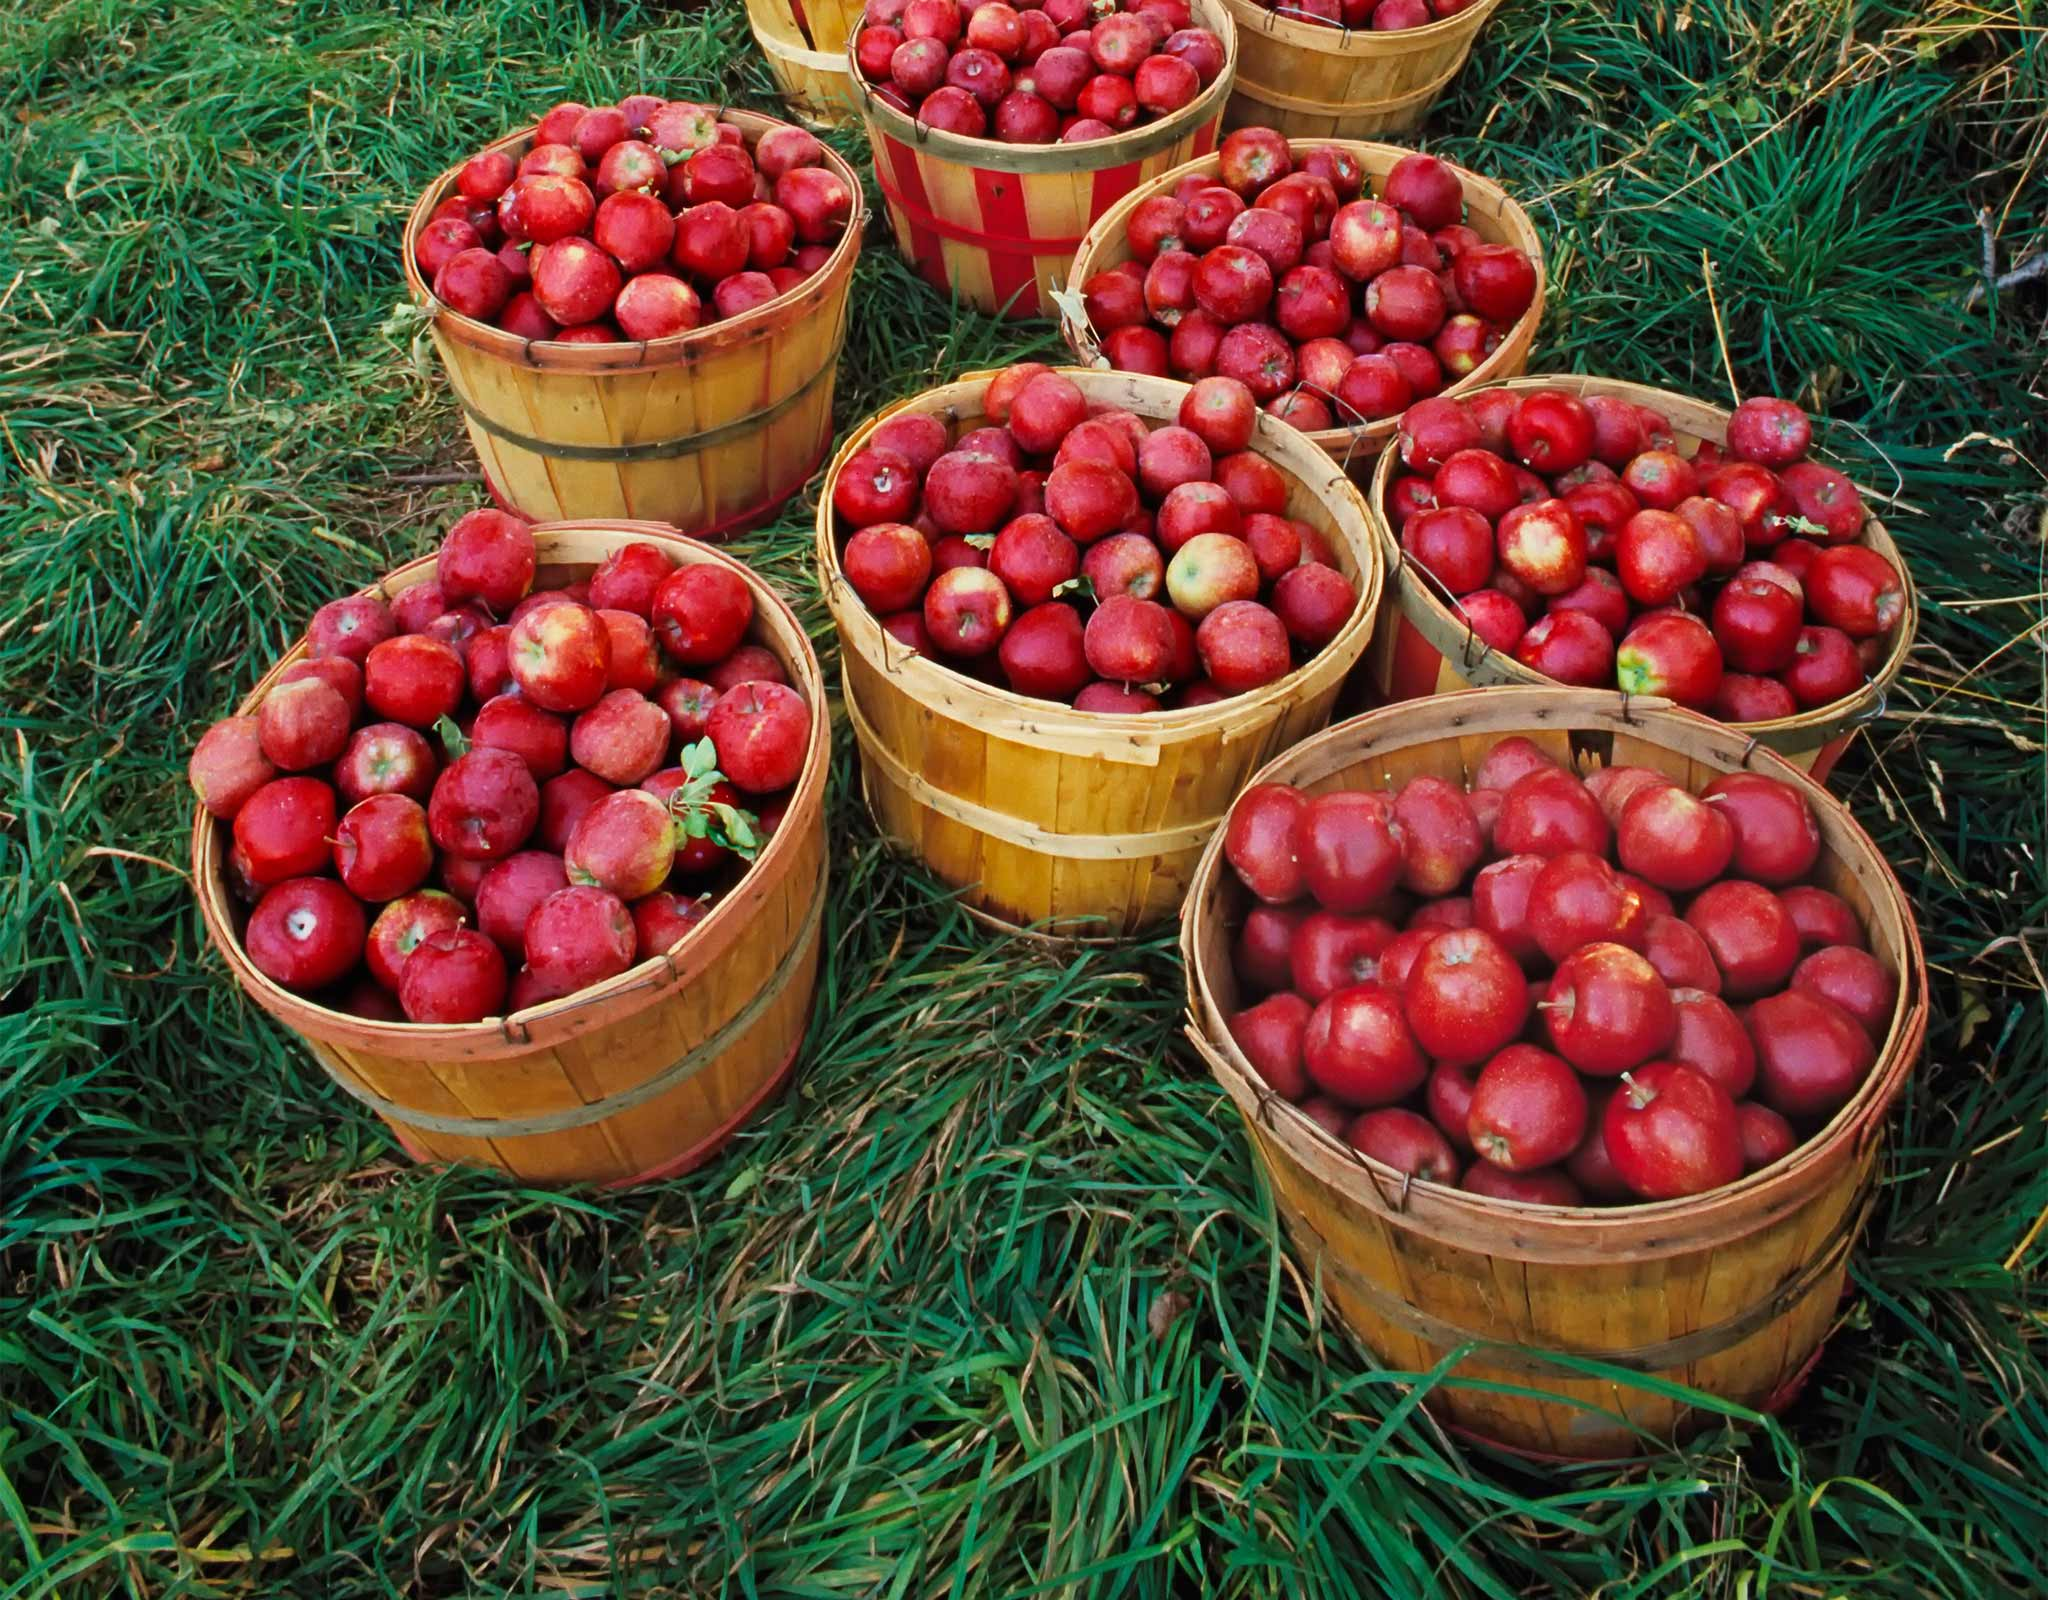 Apple baskets on grass